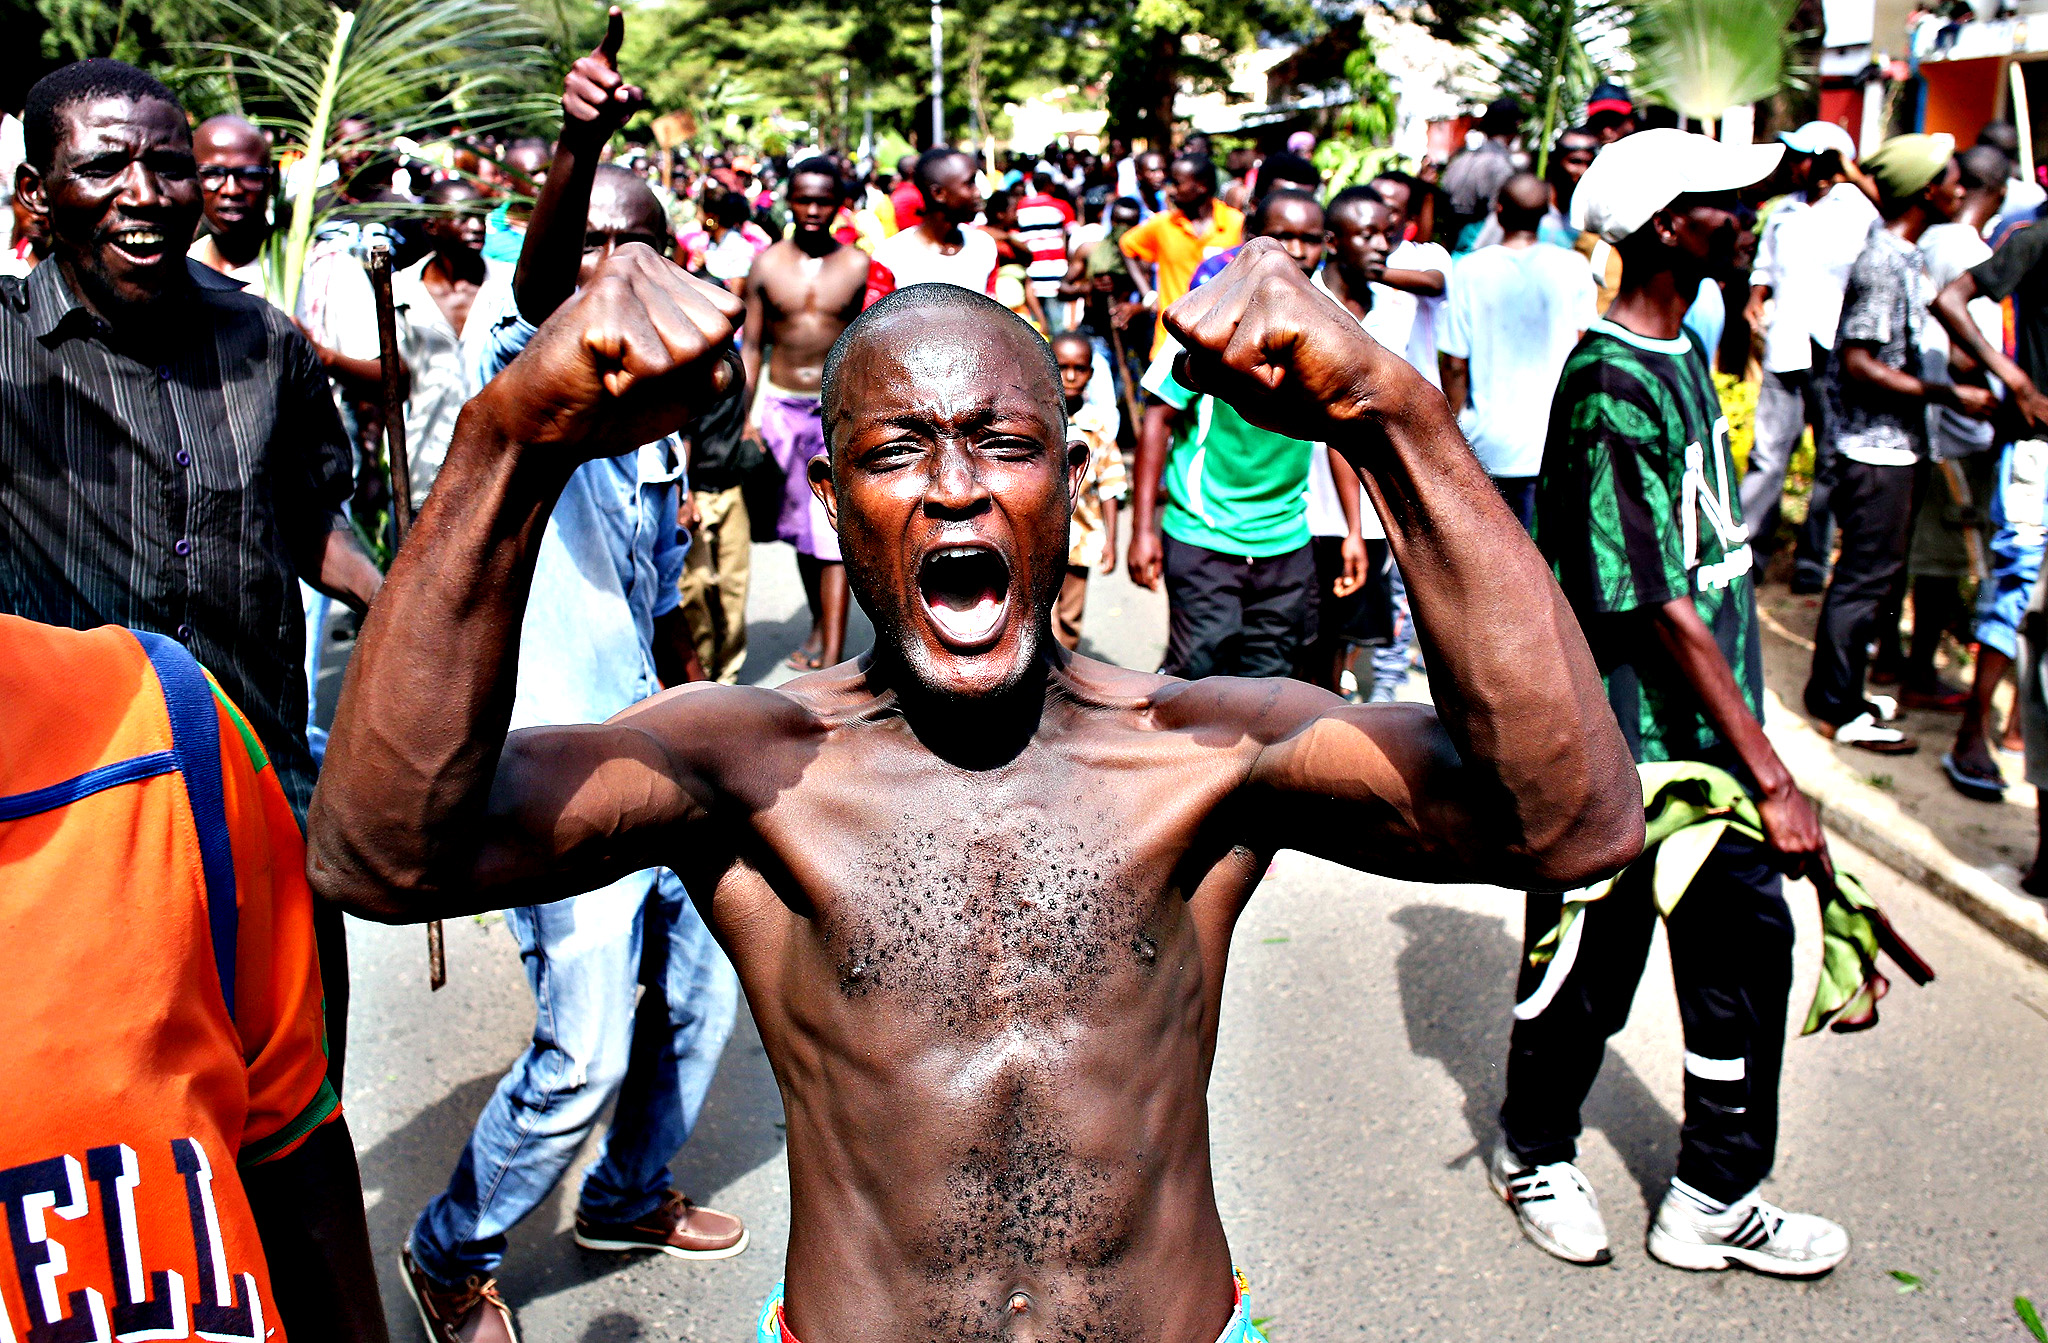 A man gestures as he celebrates in Bujumbura, Burundi.  Crowds poured onto the streets of Burundi's capital on Wednesday to celebrate after a general said he was dismissing President Pierre Nkurunziza for violating the constitution by seeking a third term in office